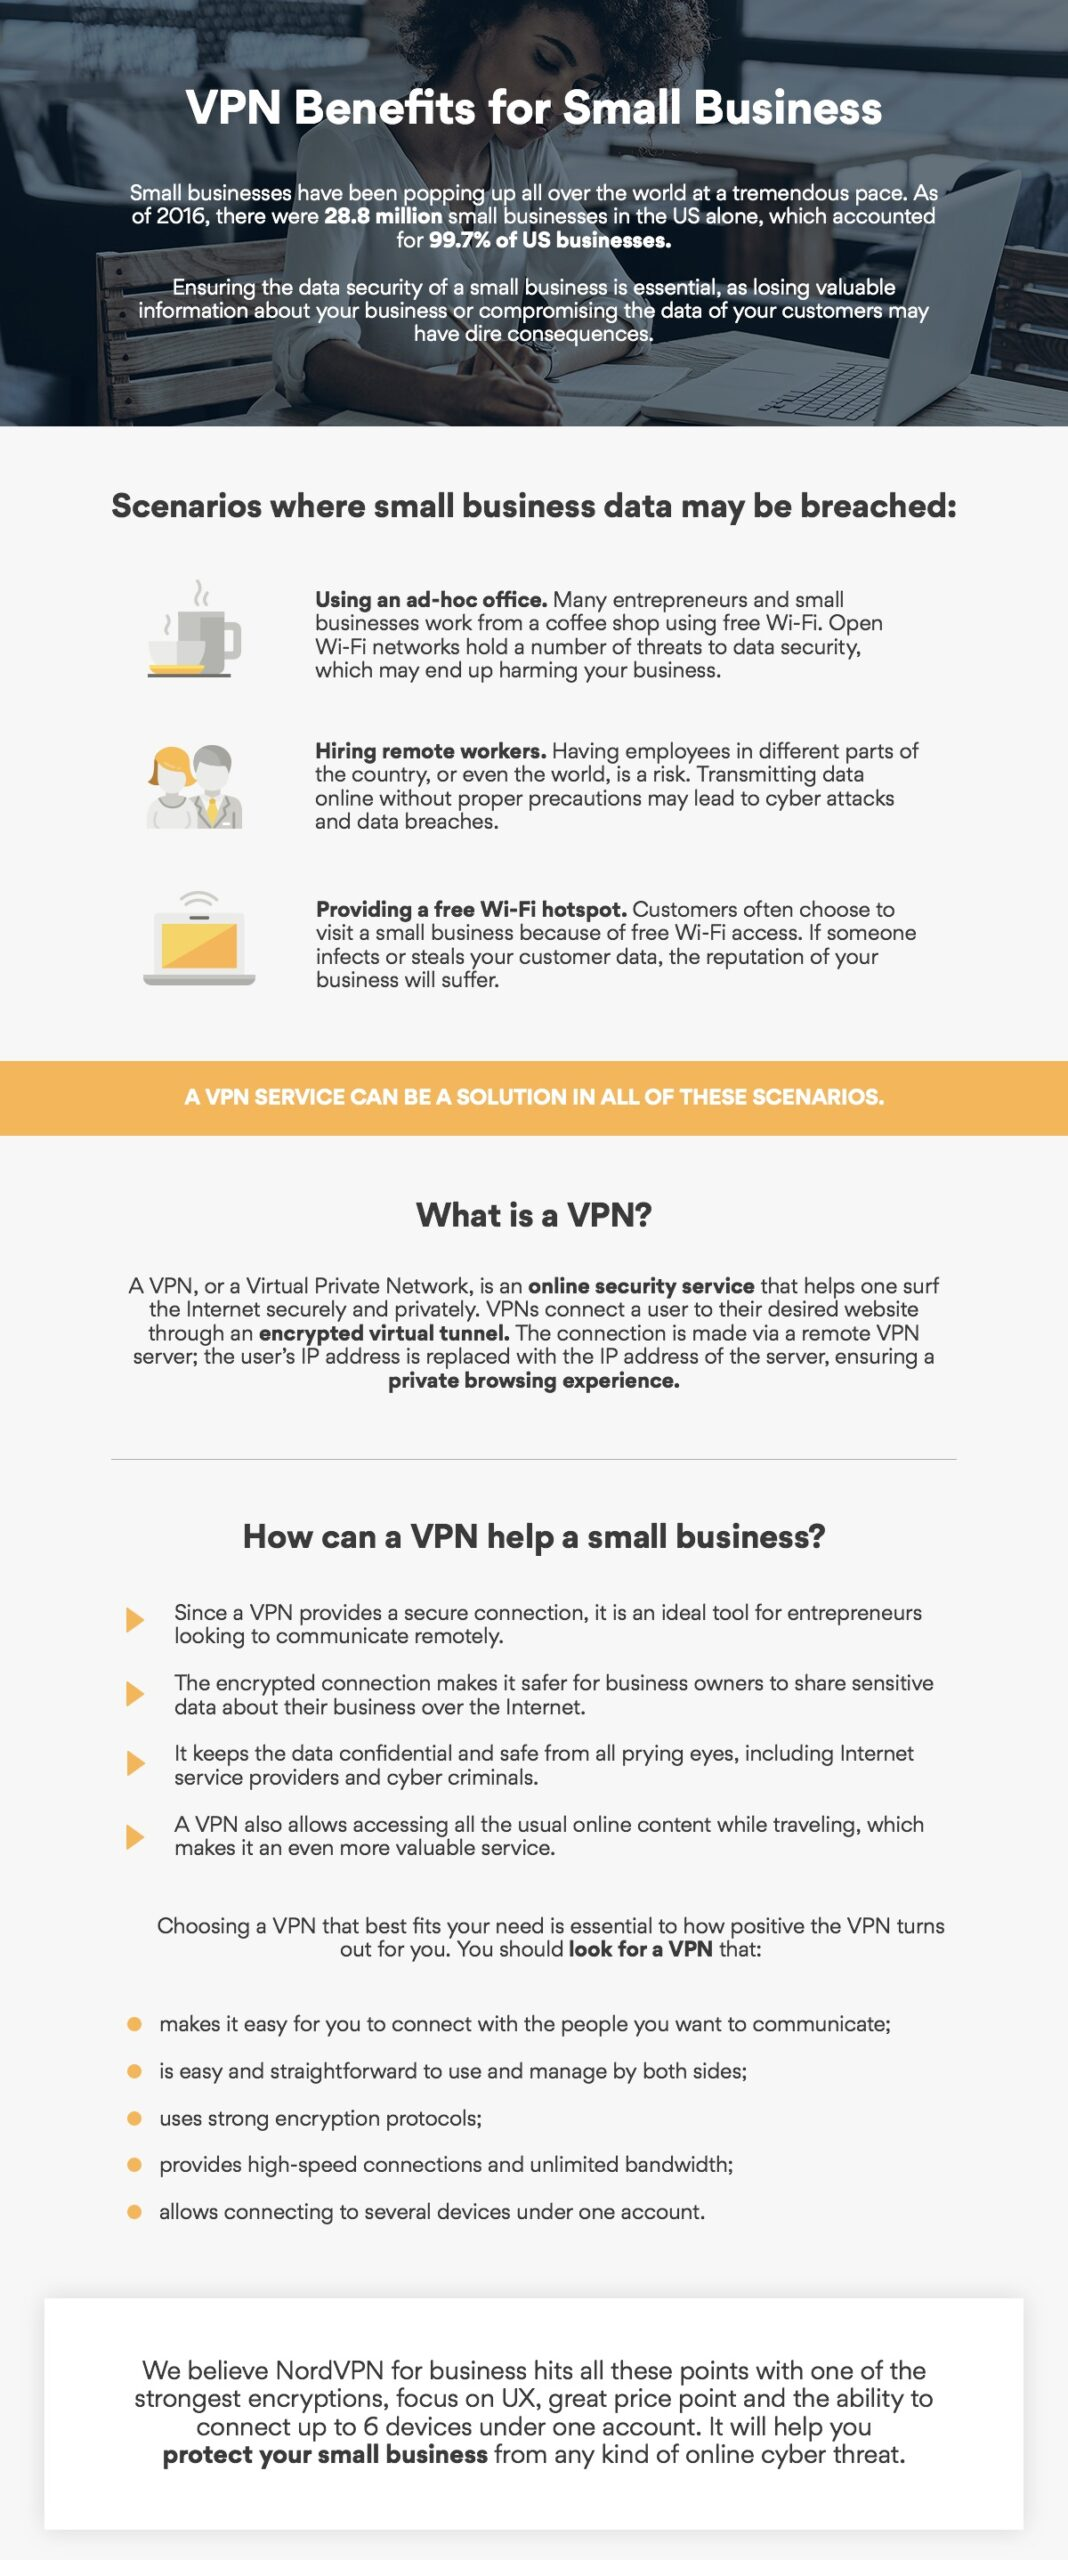 Best VPN for Small Businesses